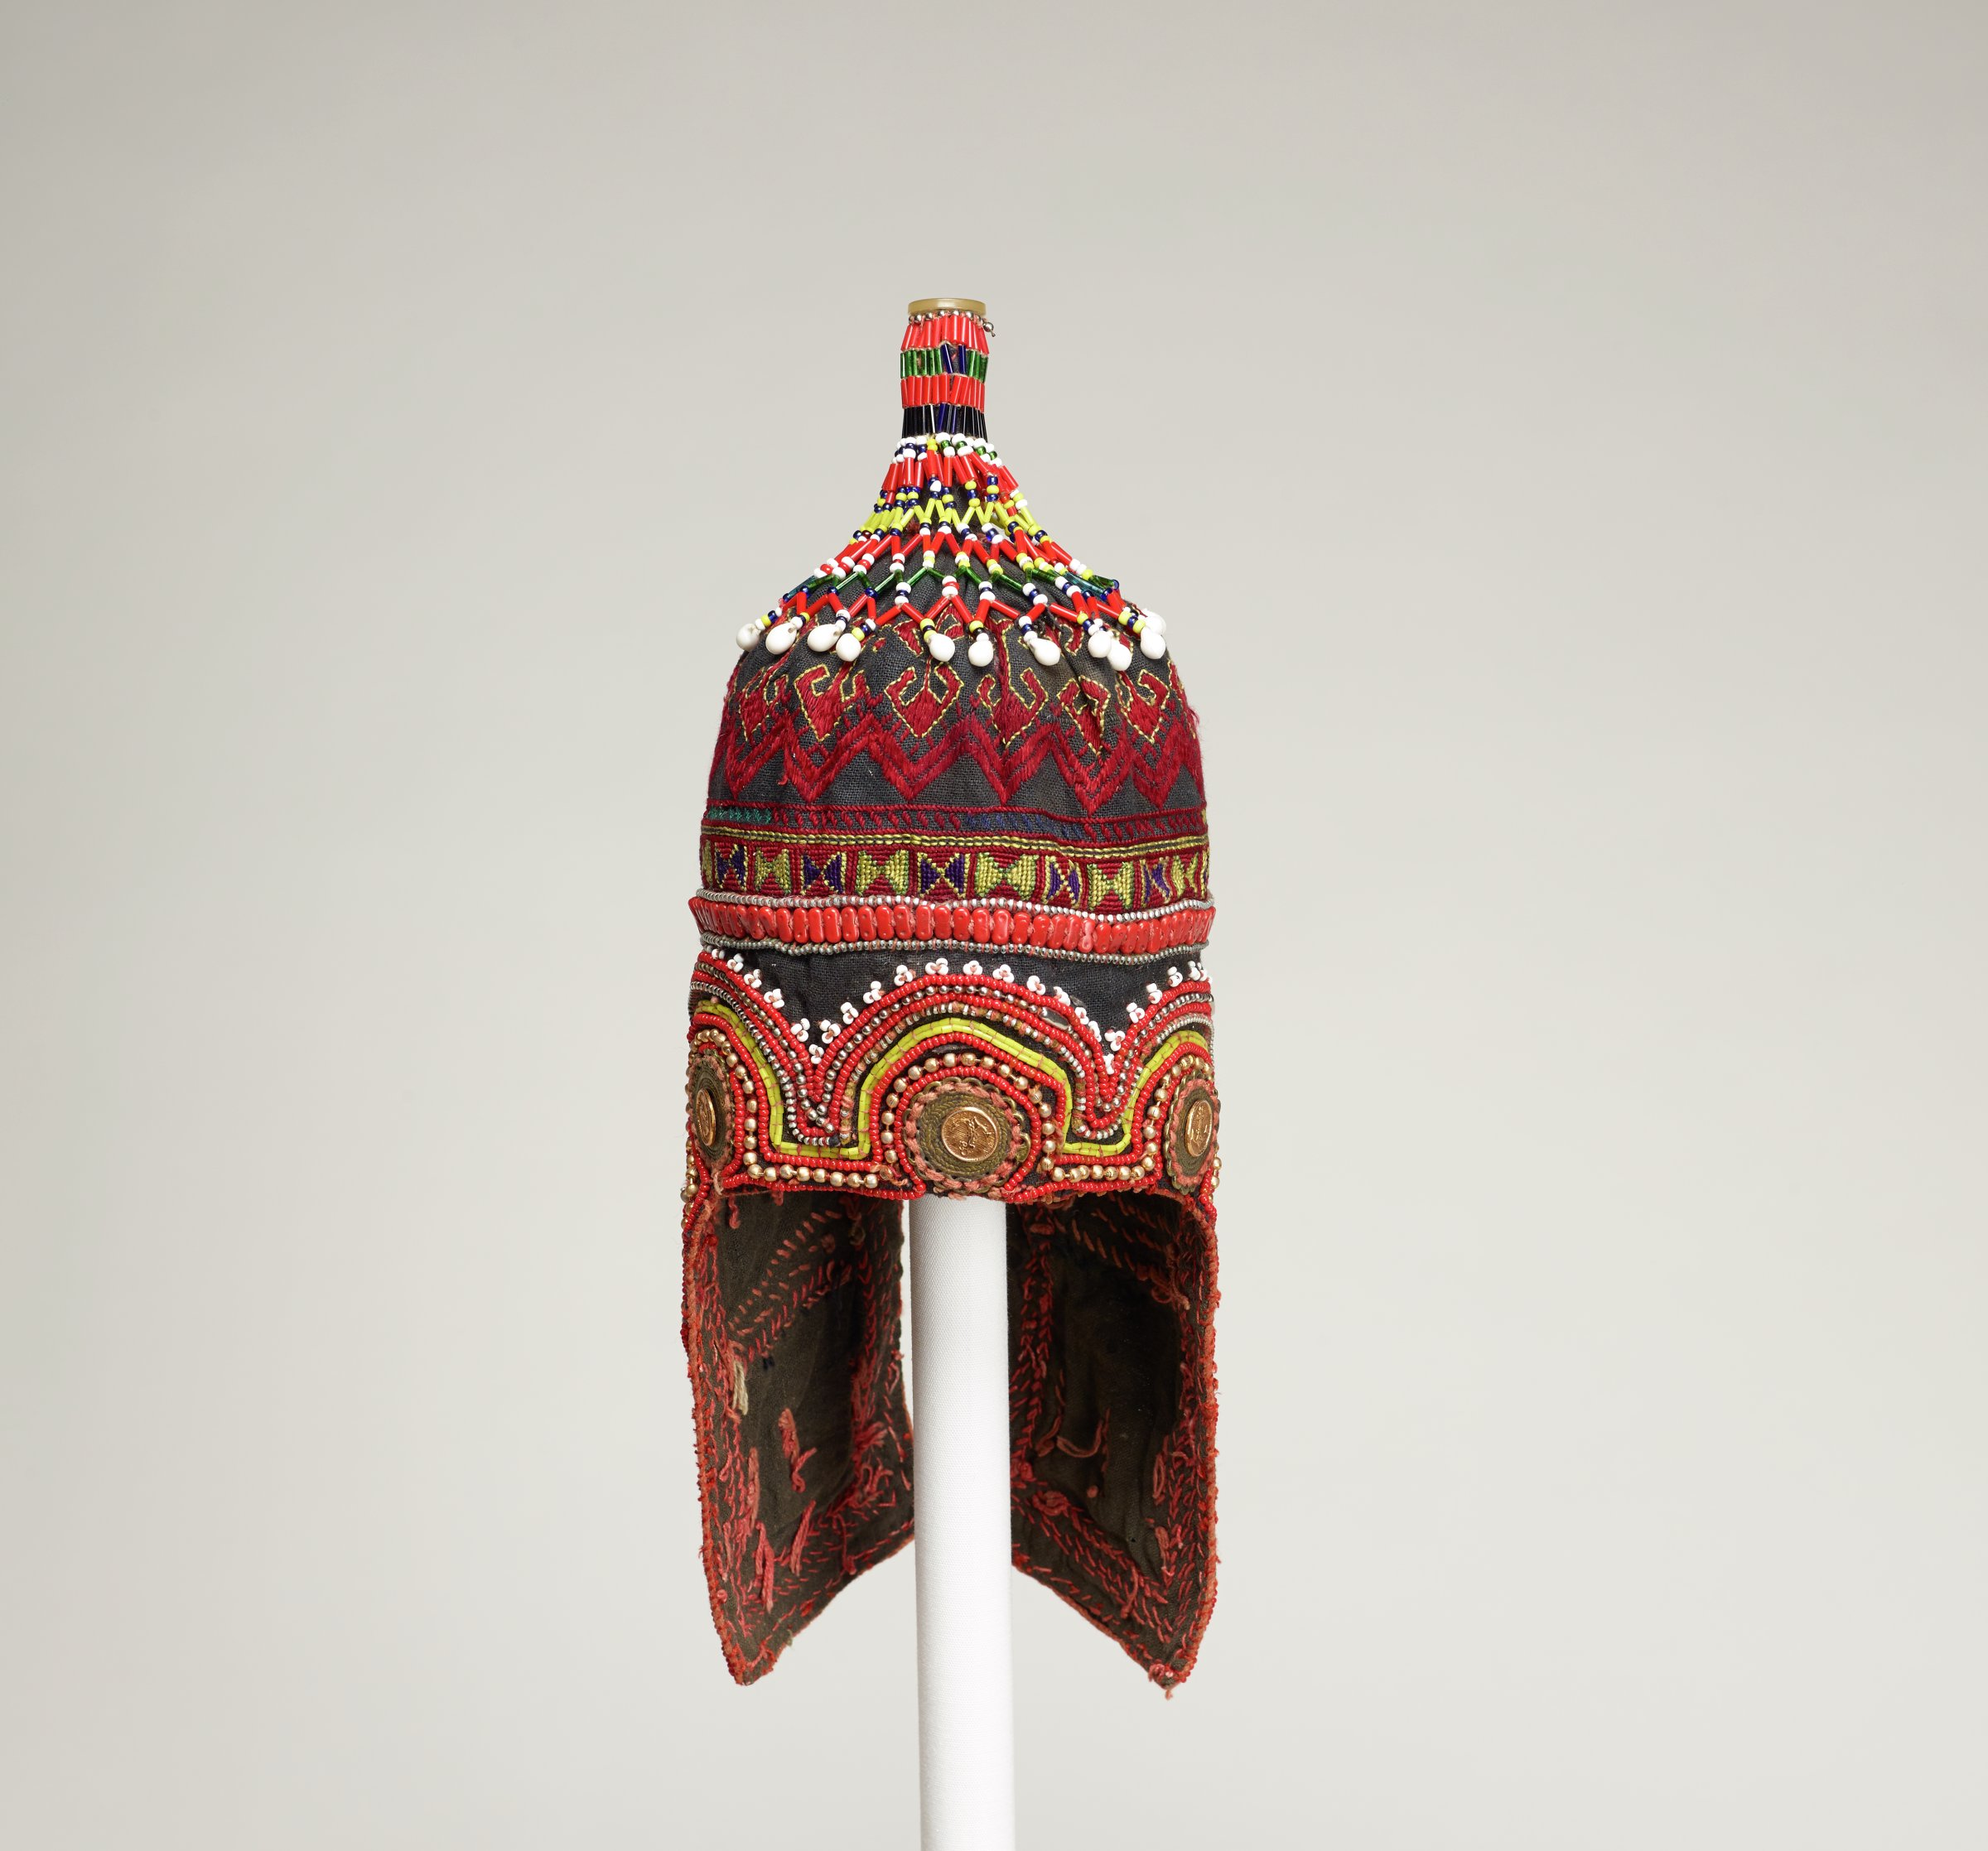 Hat, Uzbekistan, cotton textiles, plastic and glass beads, metal ornaments, buttons, snaps, zippers, chains, and embroidery thread